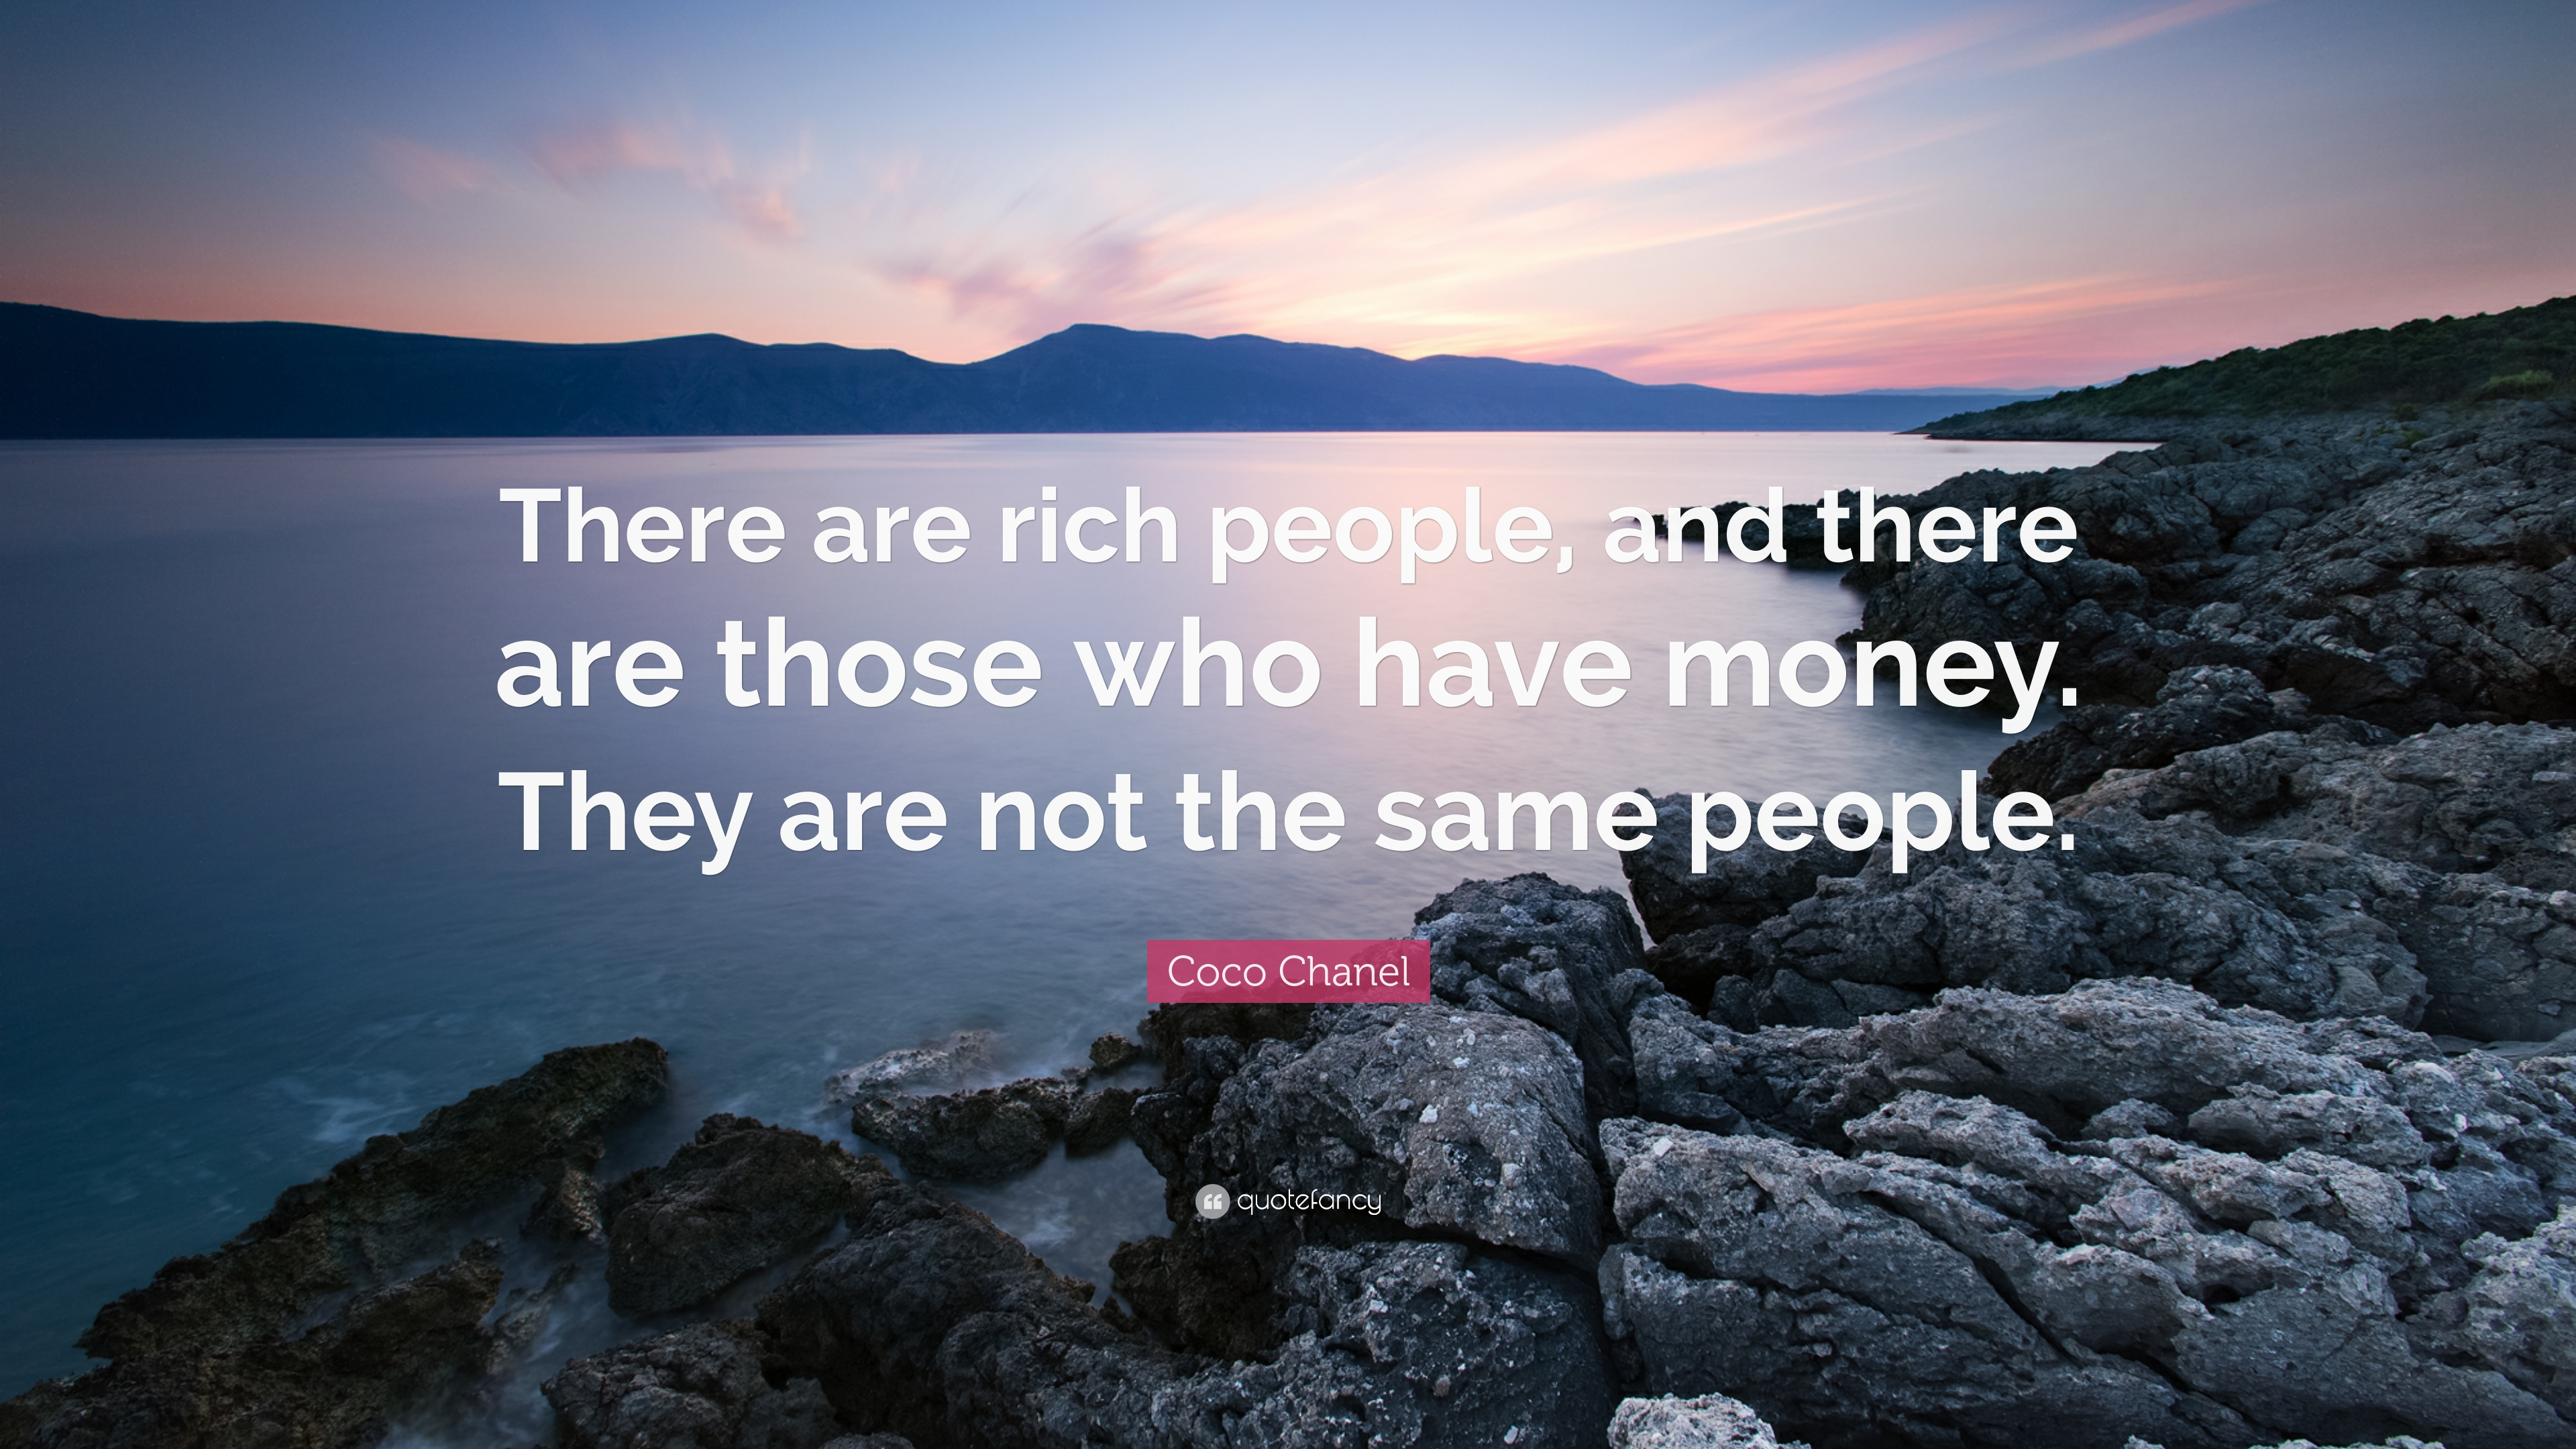 7 Inspirational Quotes About Money